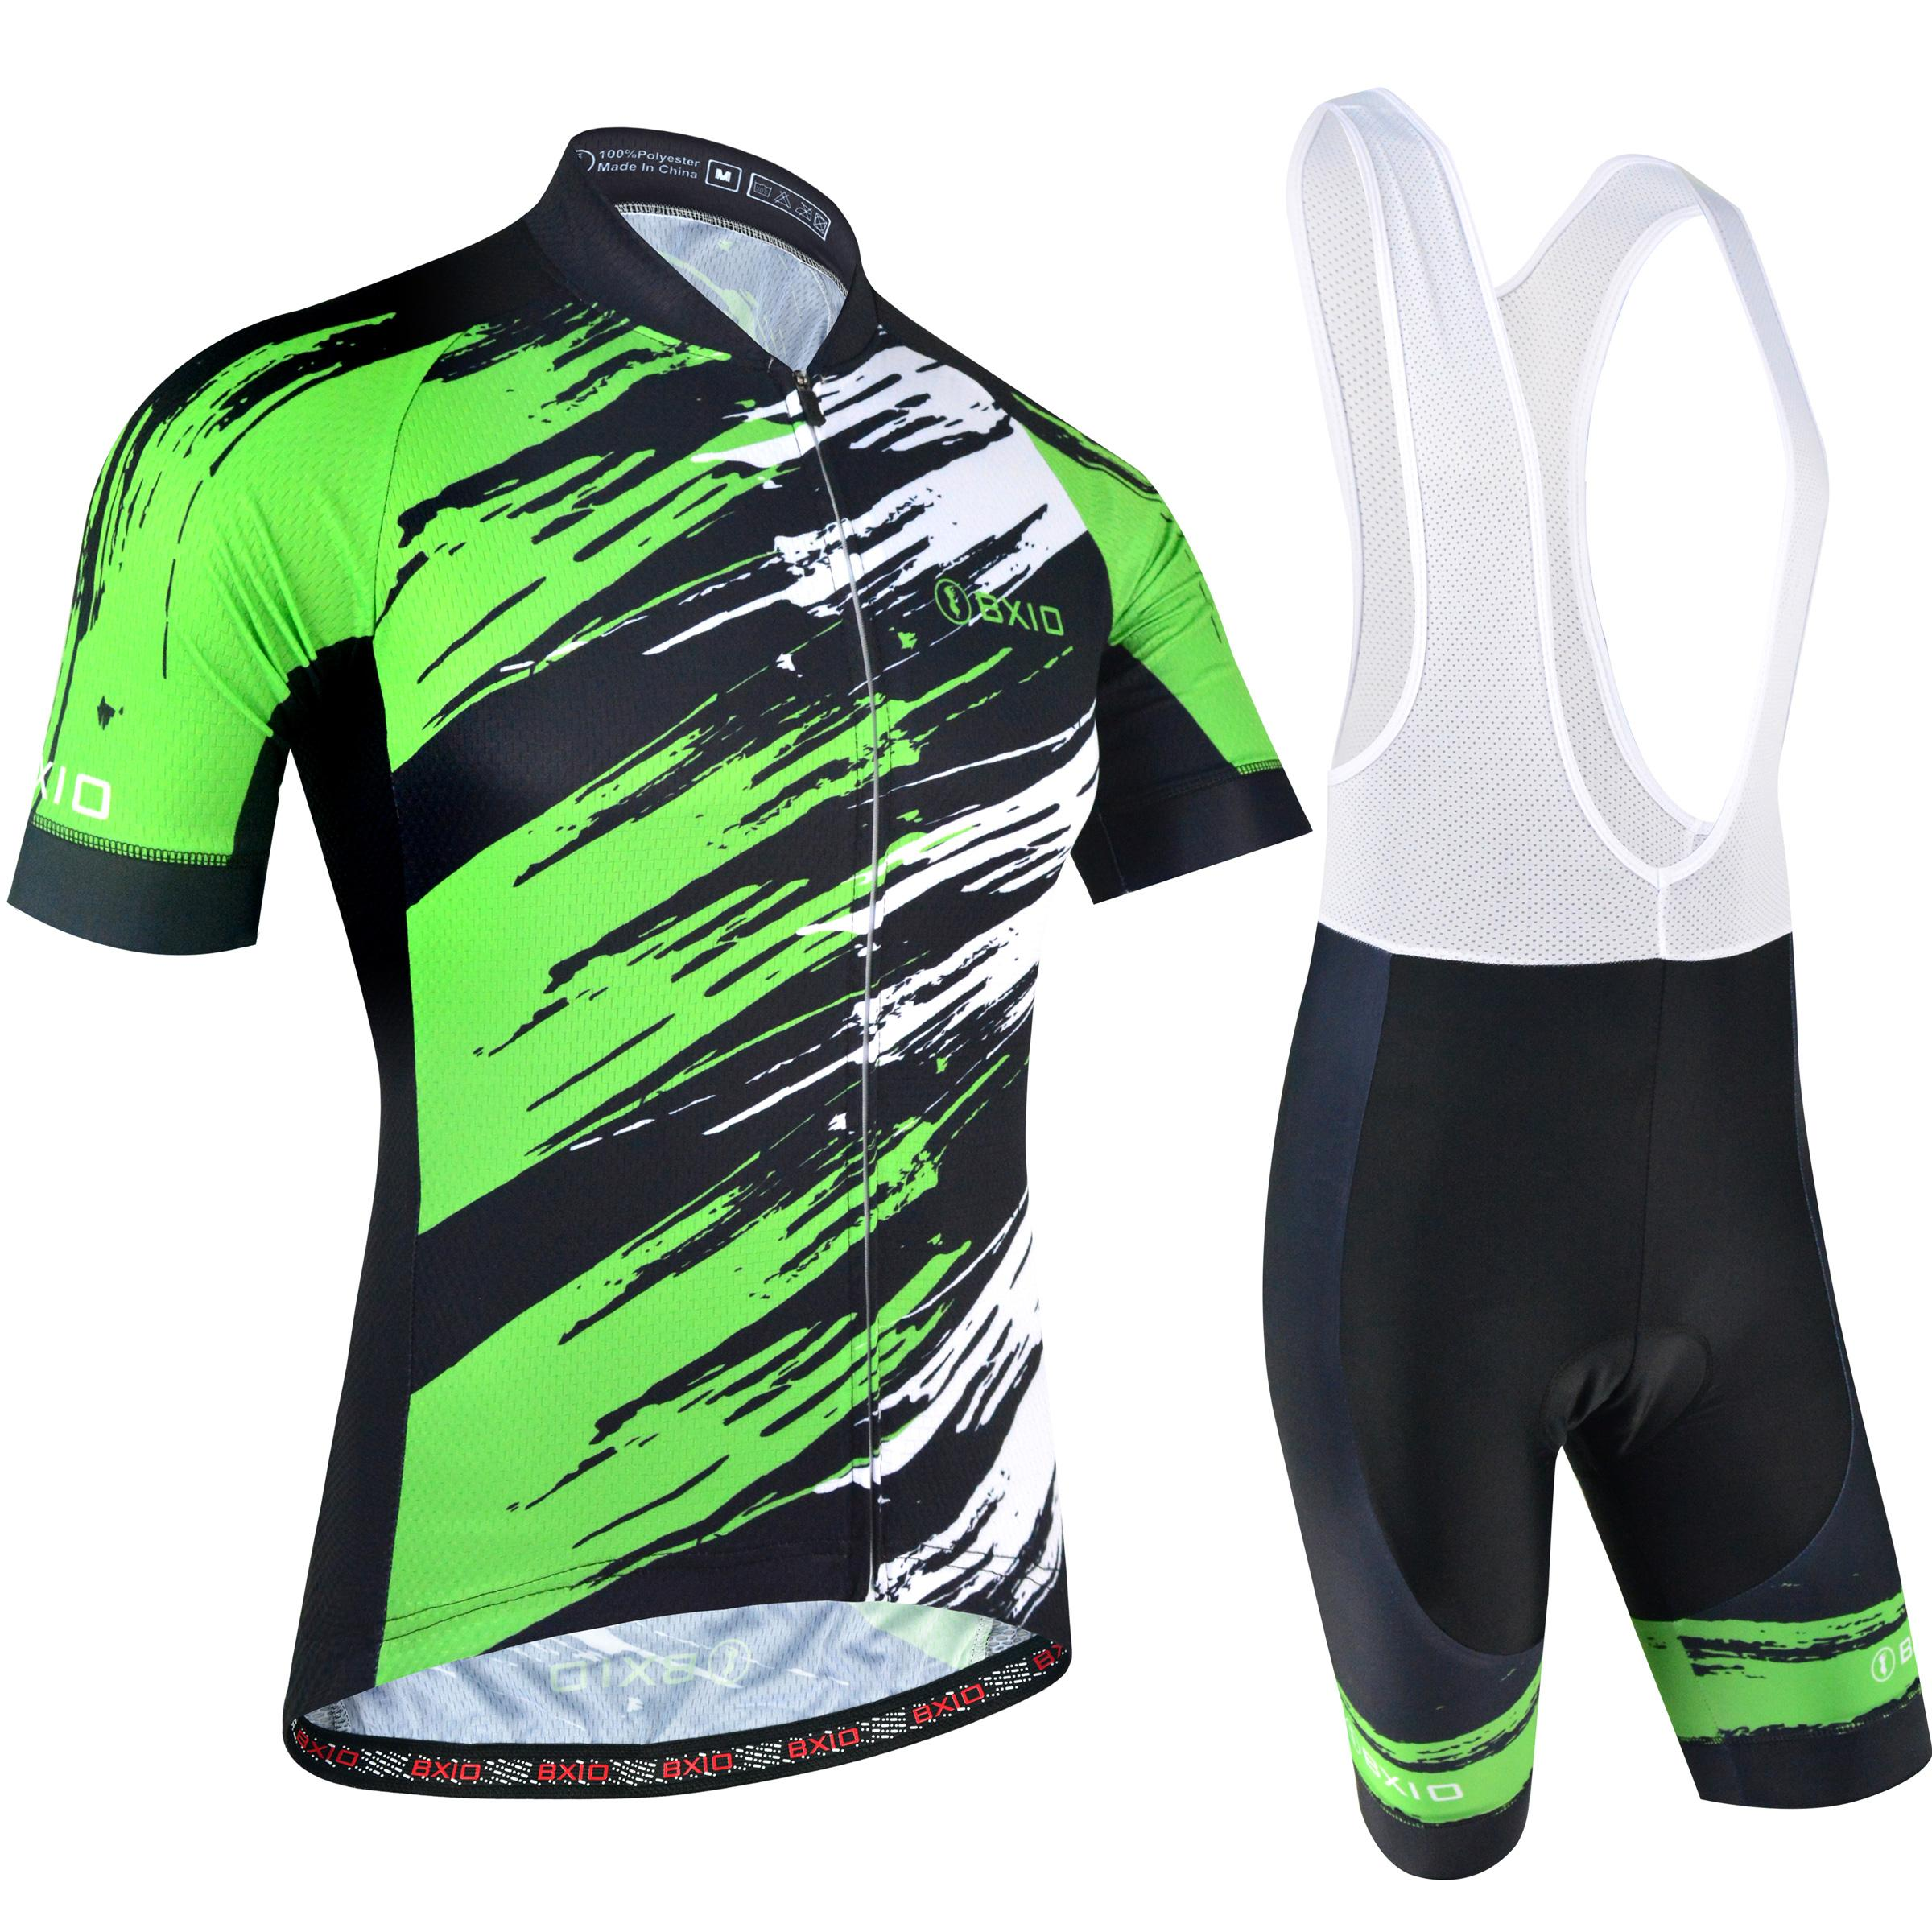 82a5bc323 2018 BXIO Brand Cool Cycling Jerseys Highly Recommended Graffiti Style Bike  Clothing Green And White Short Sleeve Ropa Ciclismo Men BX 170 Canada 2019  From ...